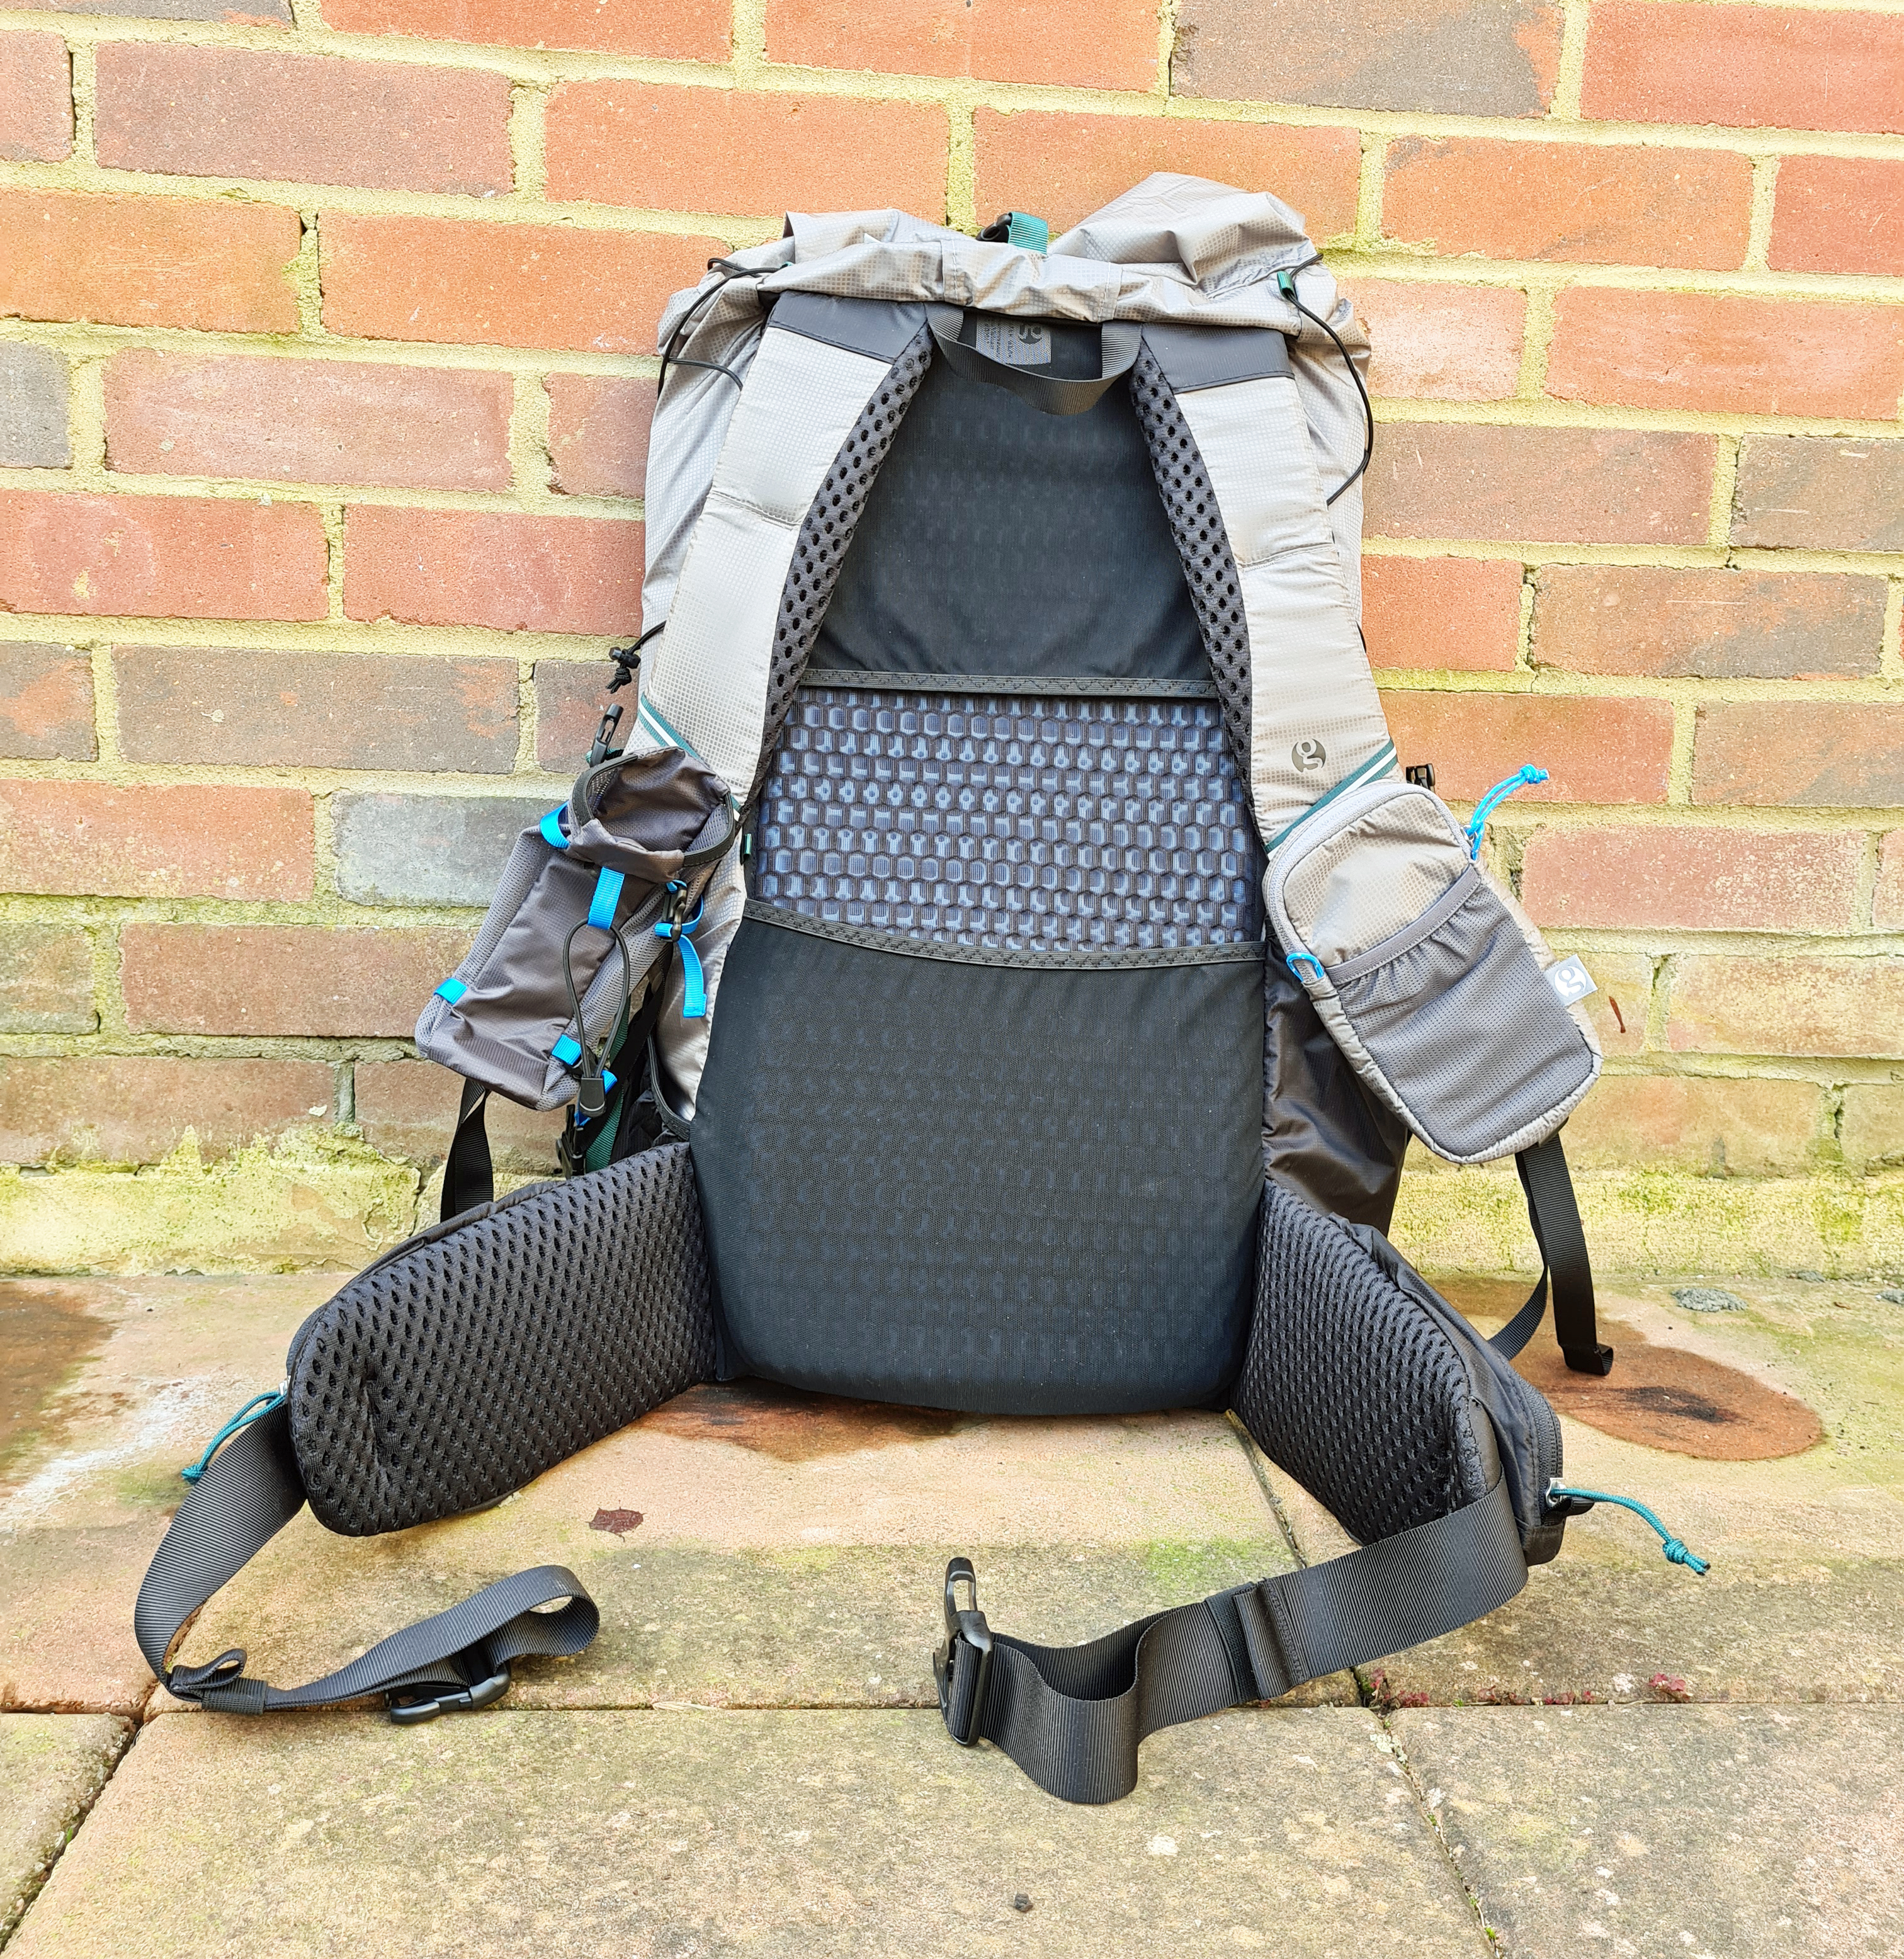 2020 Gossamer Gear G4-20 with Airlite pad